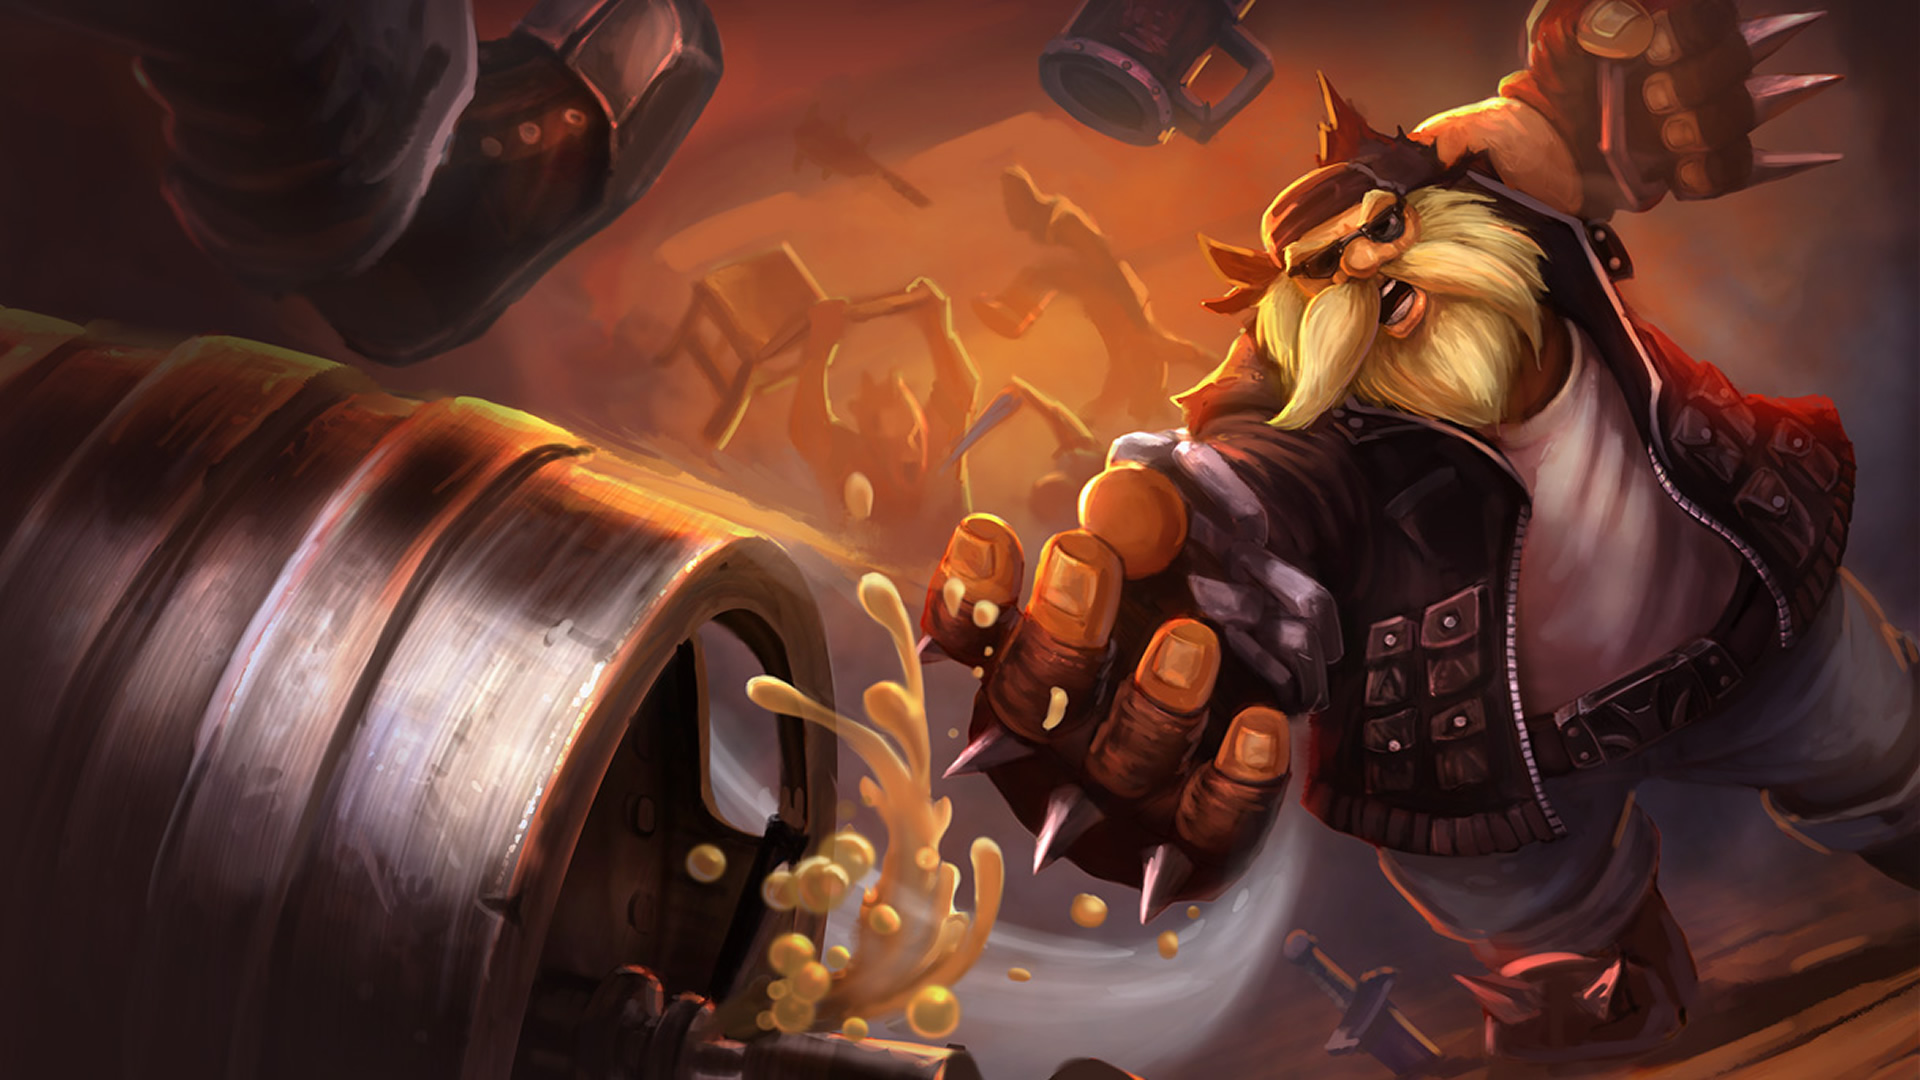 Vandal Gragas Wallpaper   LeagueSplash 1920x1080